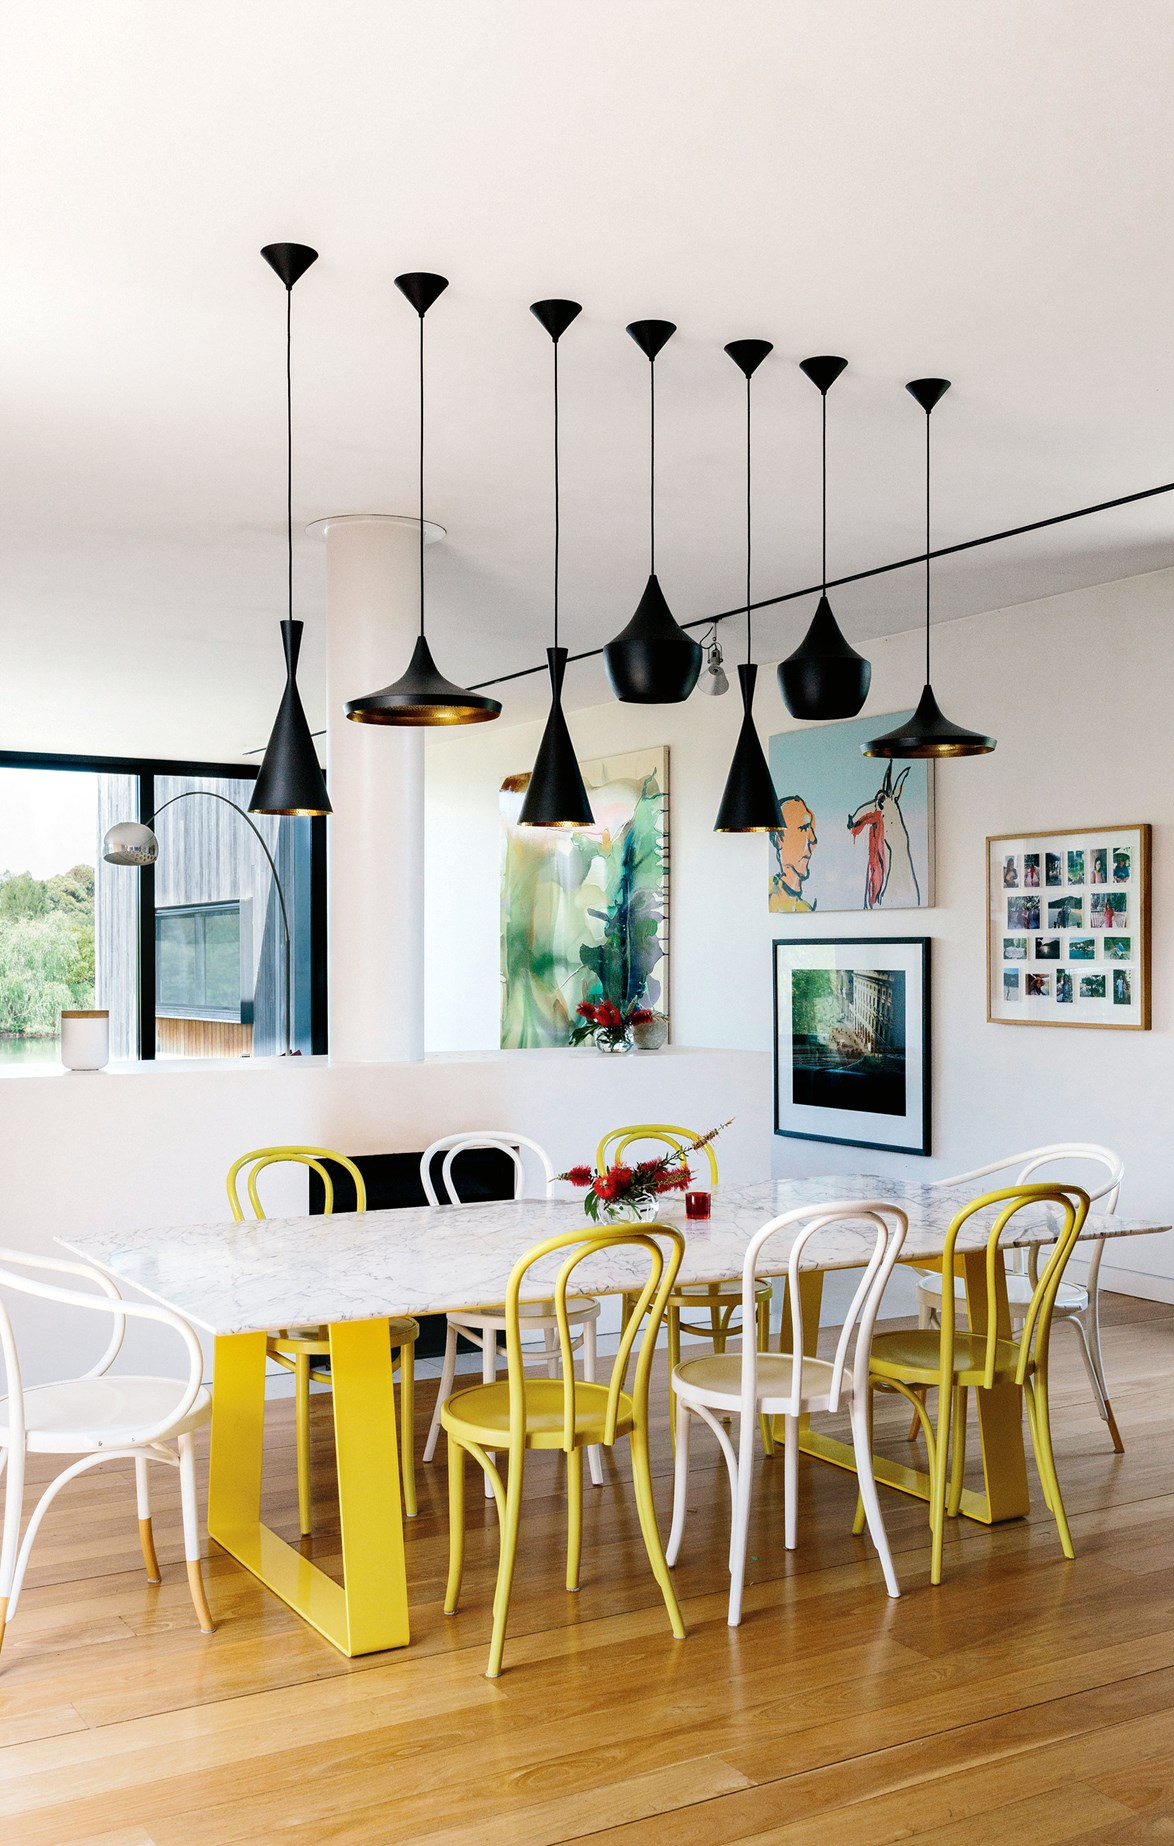 'No.B9 Le Corbusier' and 'No. 18 Thonet' chairs in alternating white and yellow make a colourful statement.